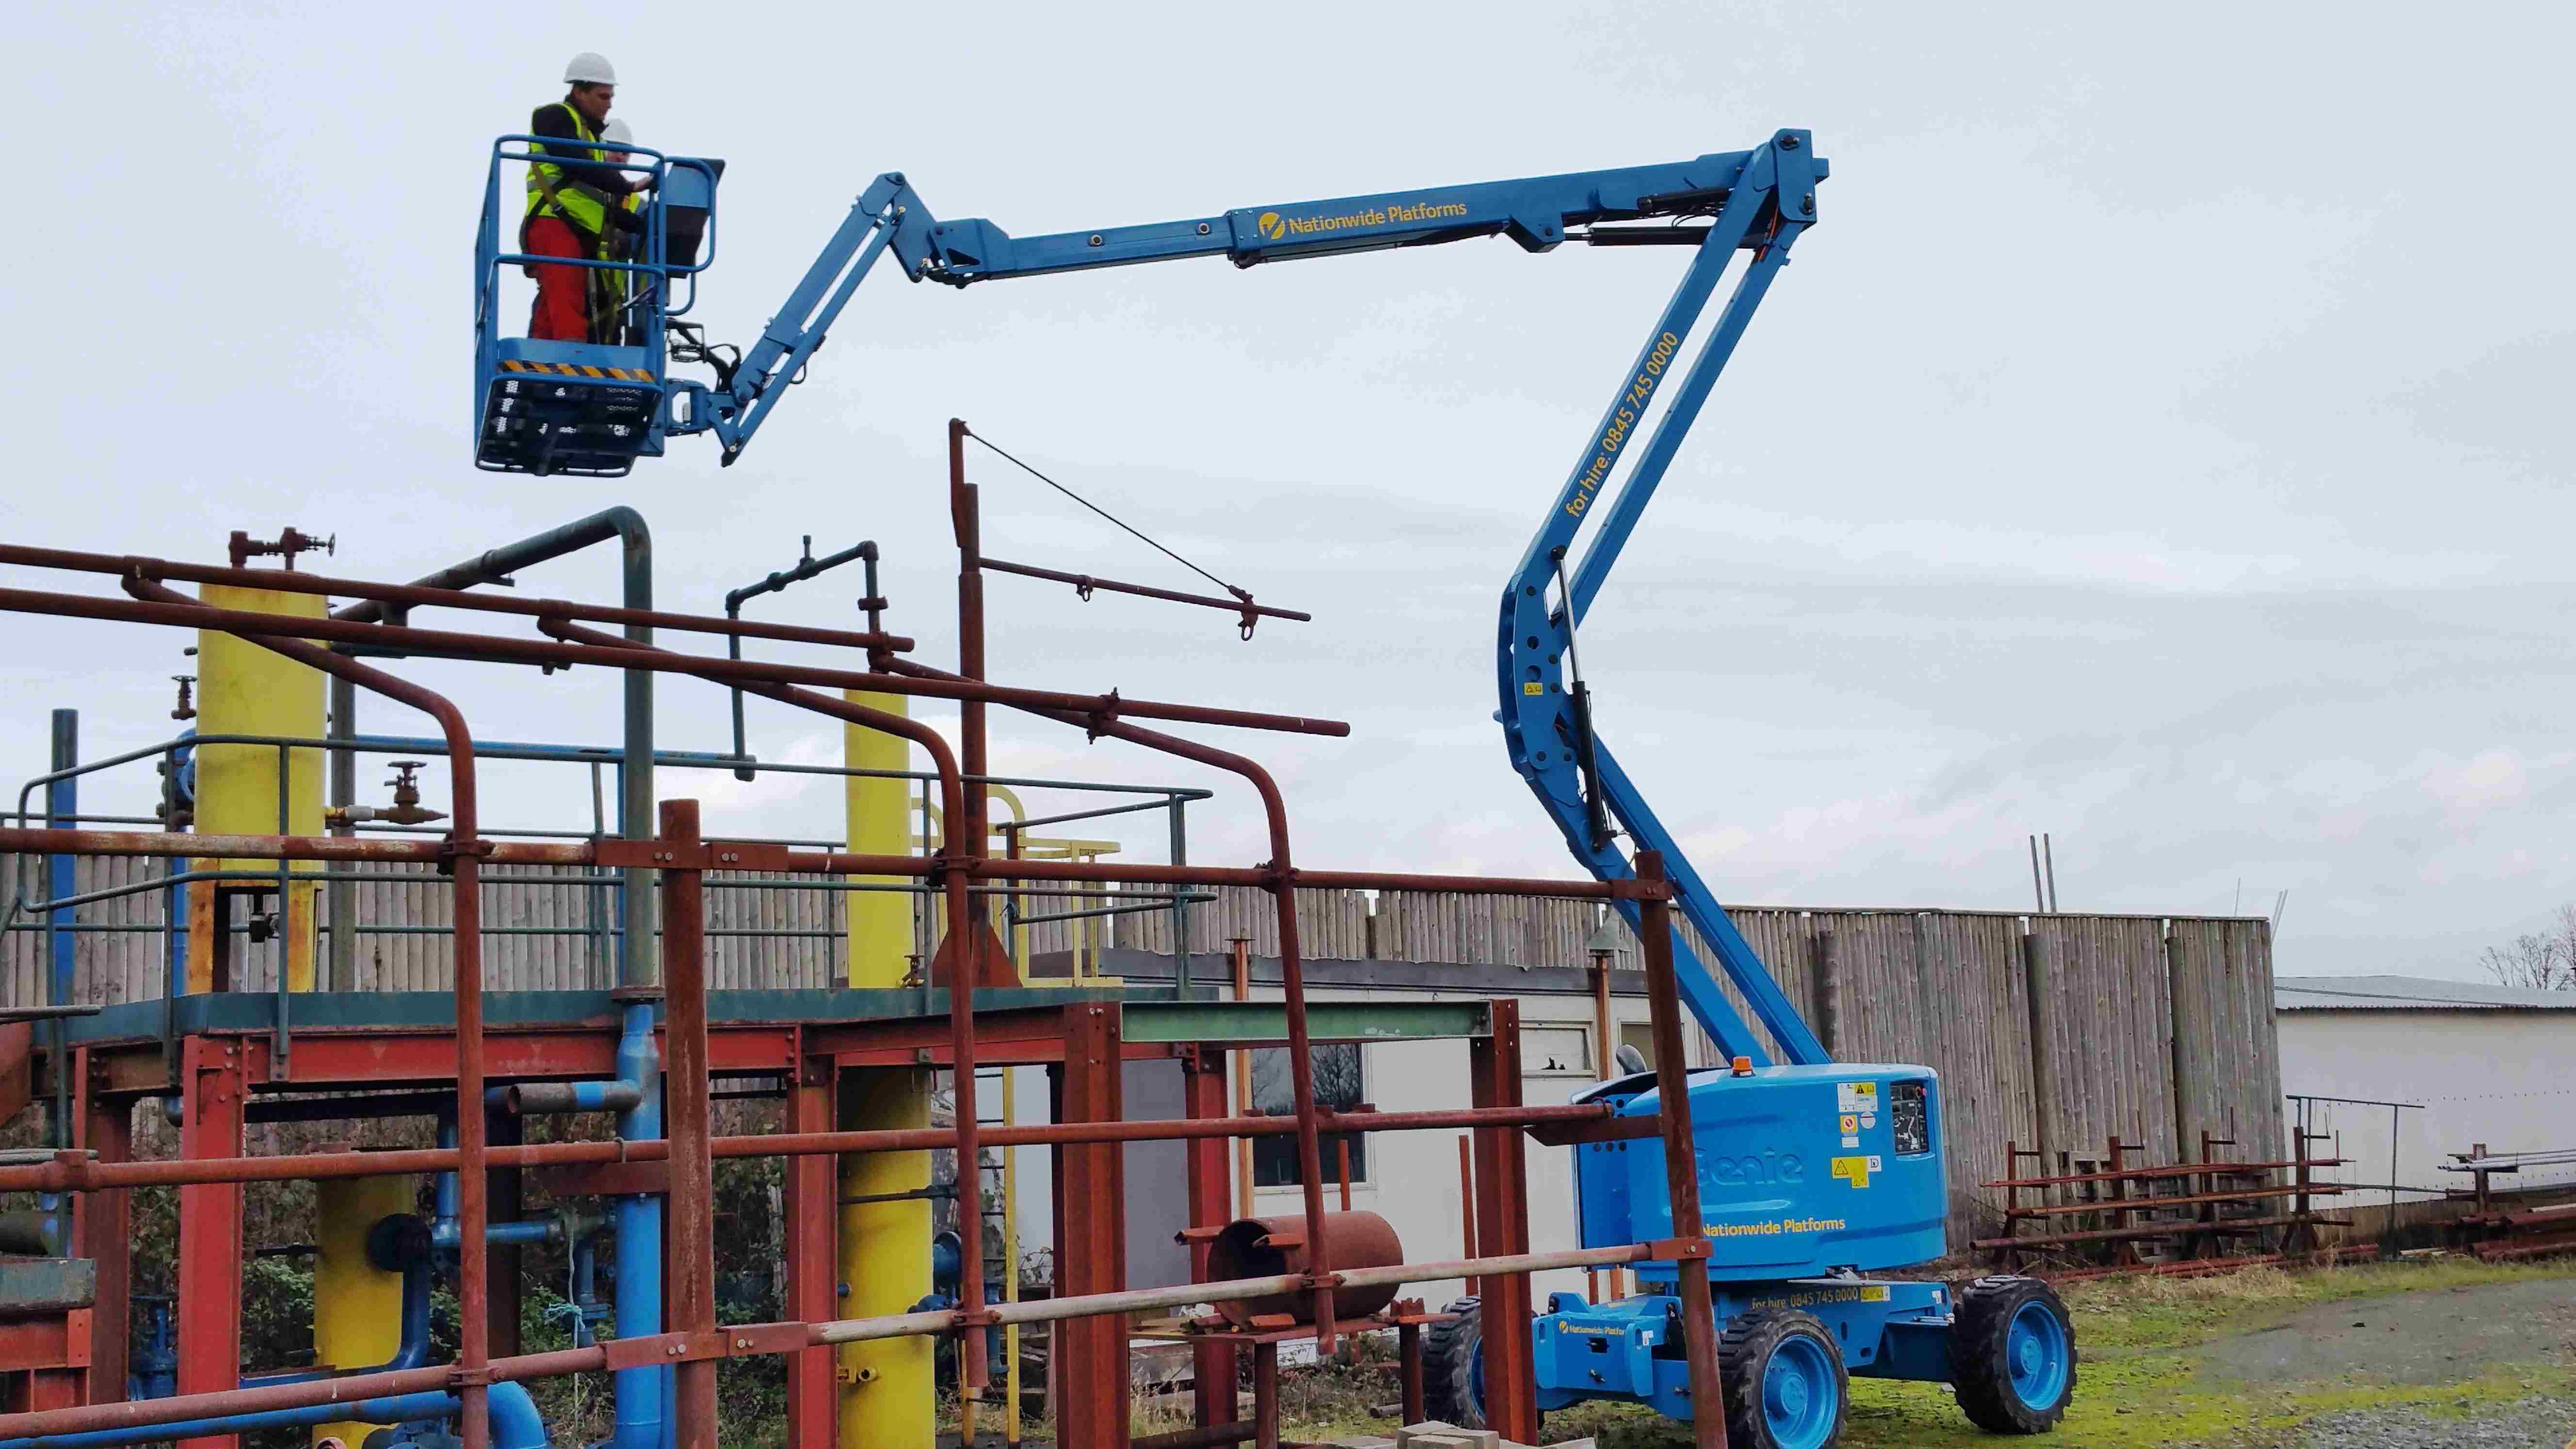 A MEWP (Mobile Elevated Work Platform) Refresher course taking place at our Centre